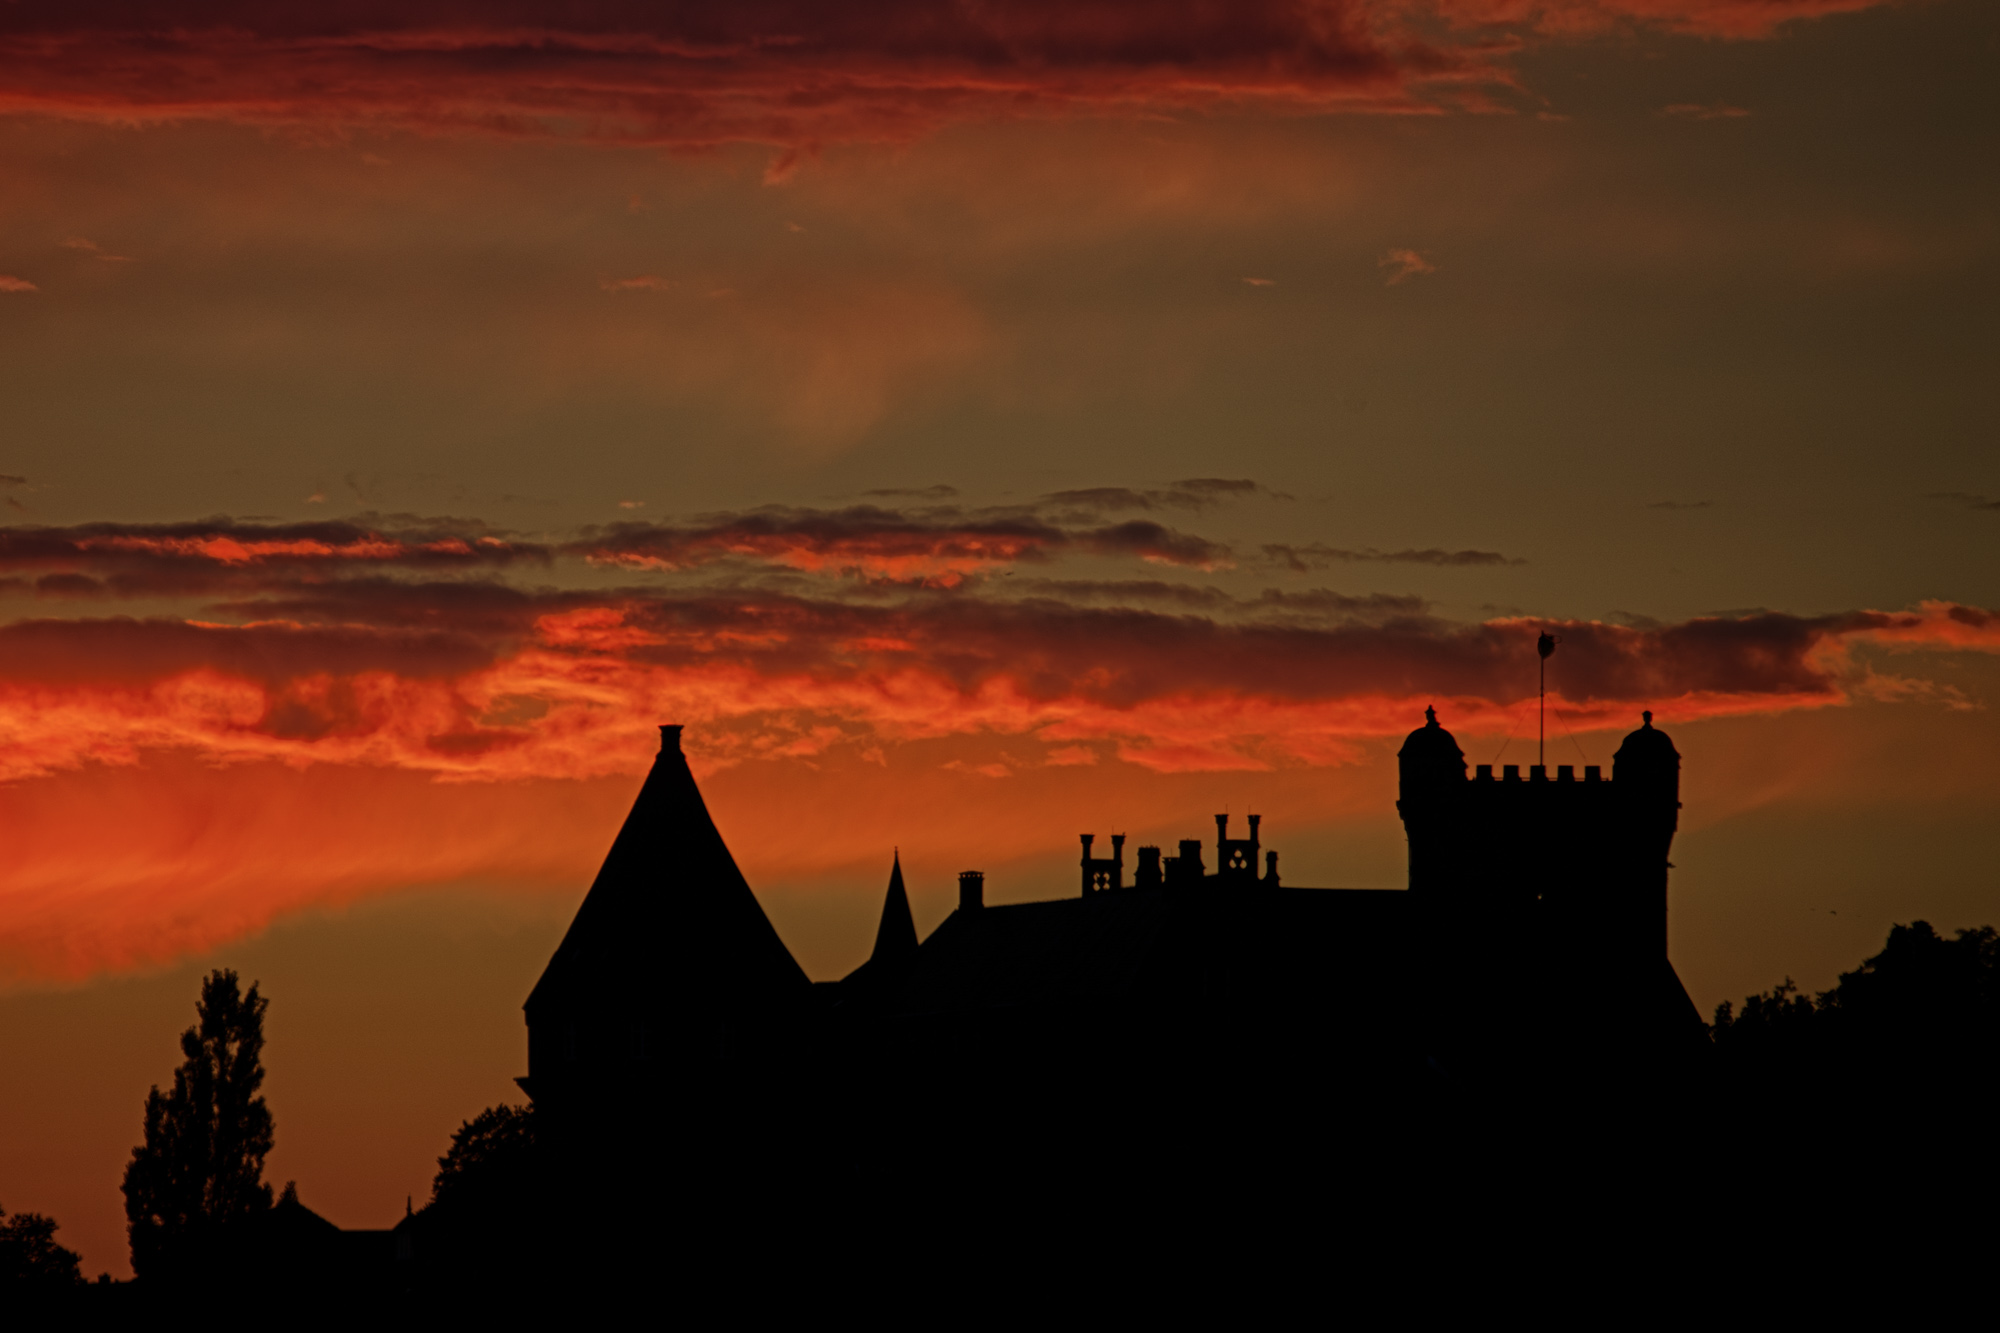 Sunset over Bentheim Castle